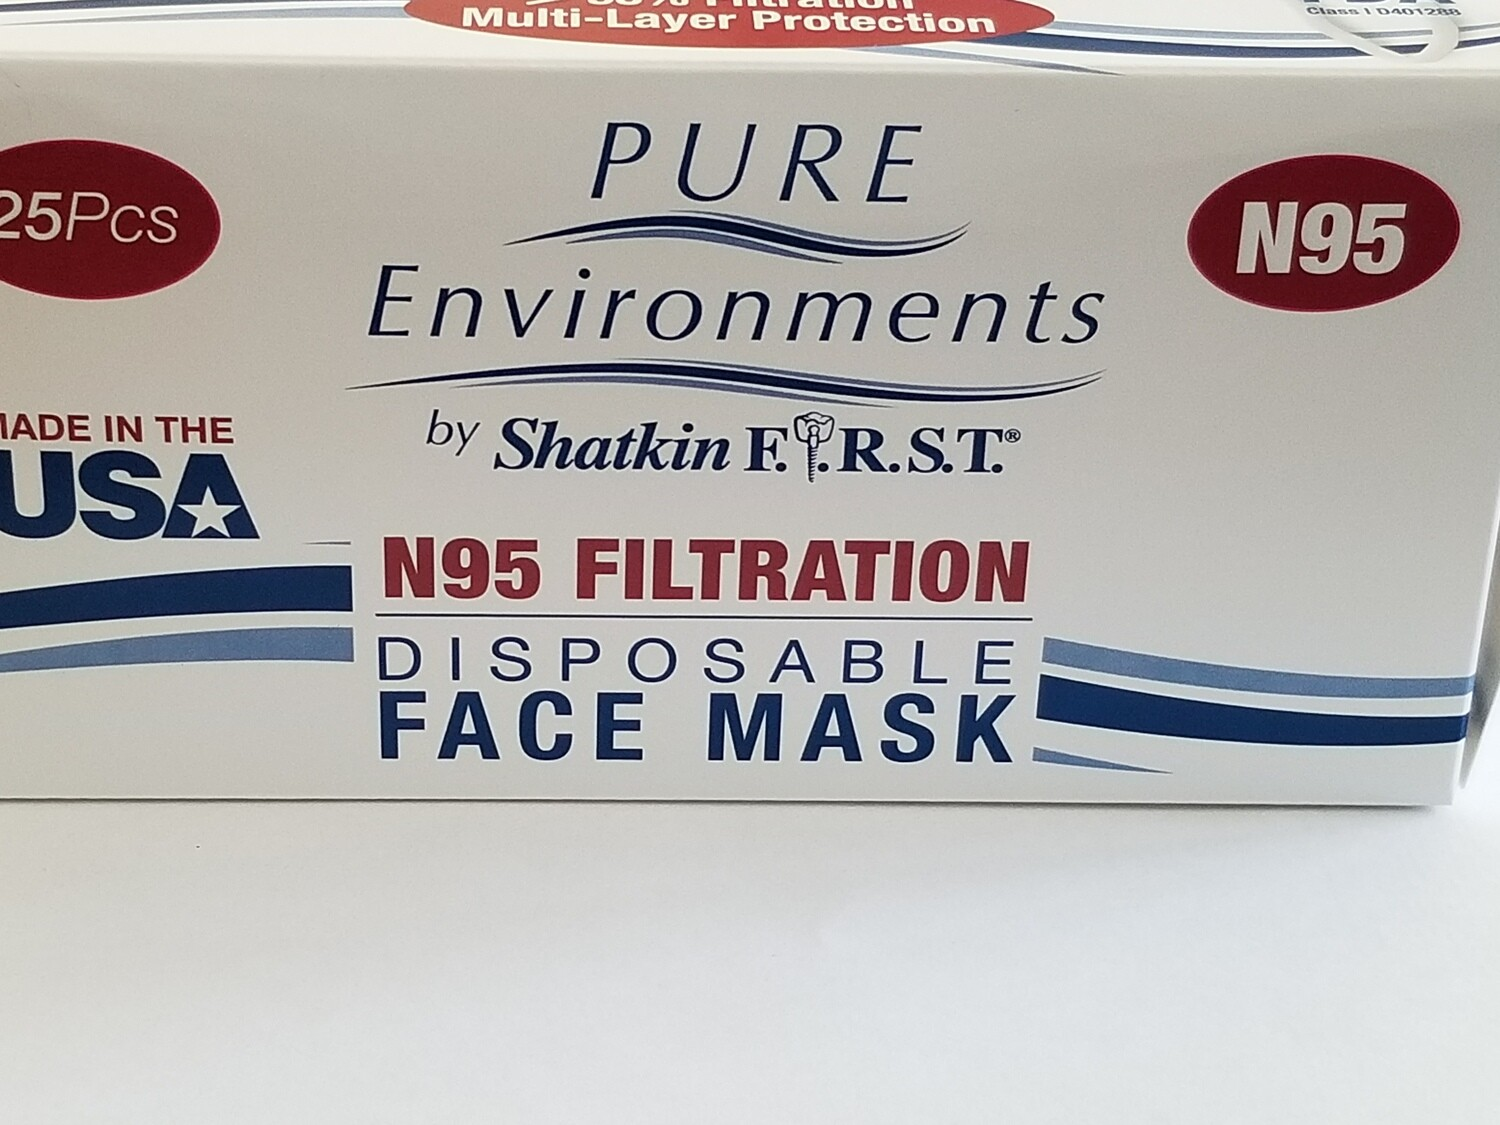 Box of 25 High Filtration Respirators Made In USA